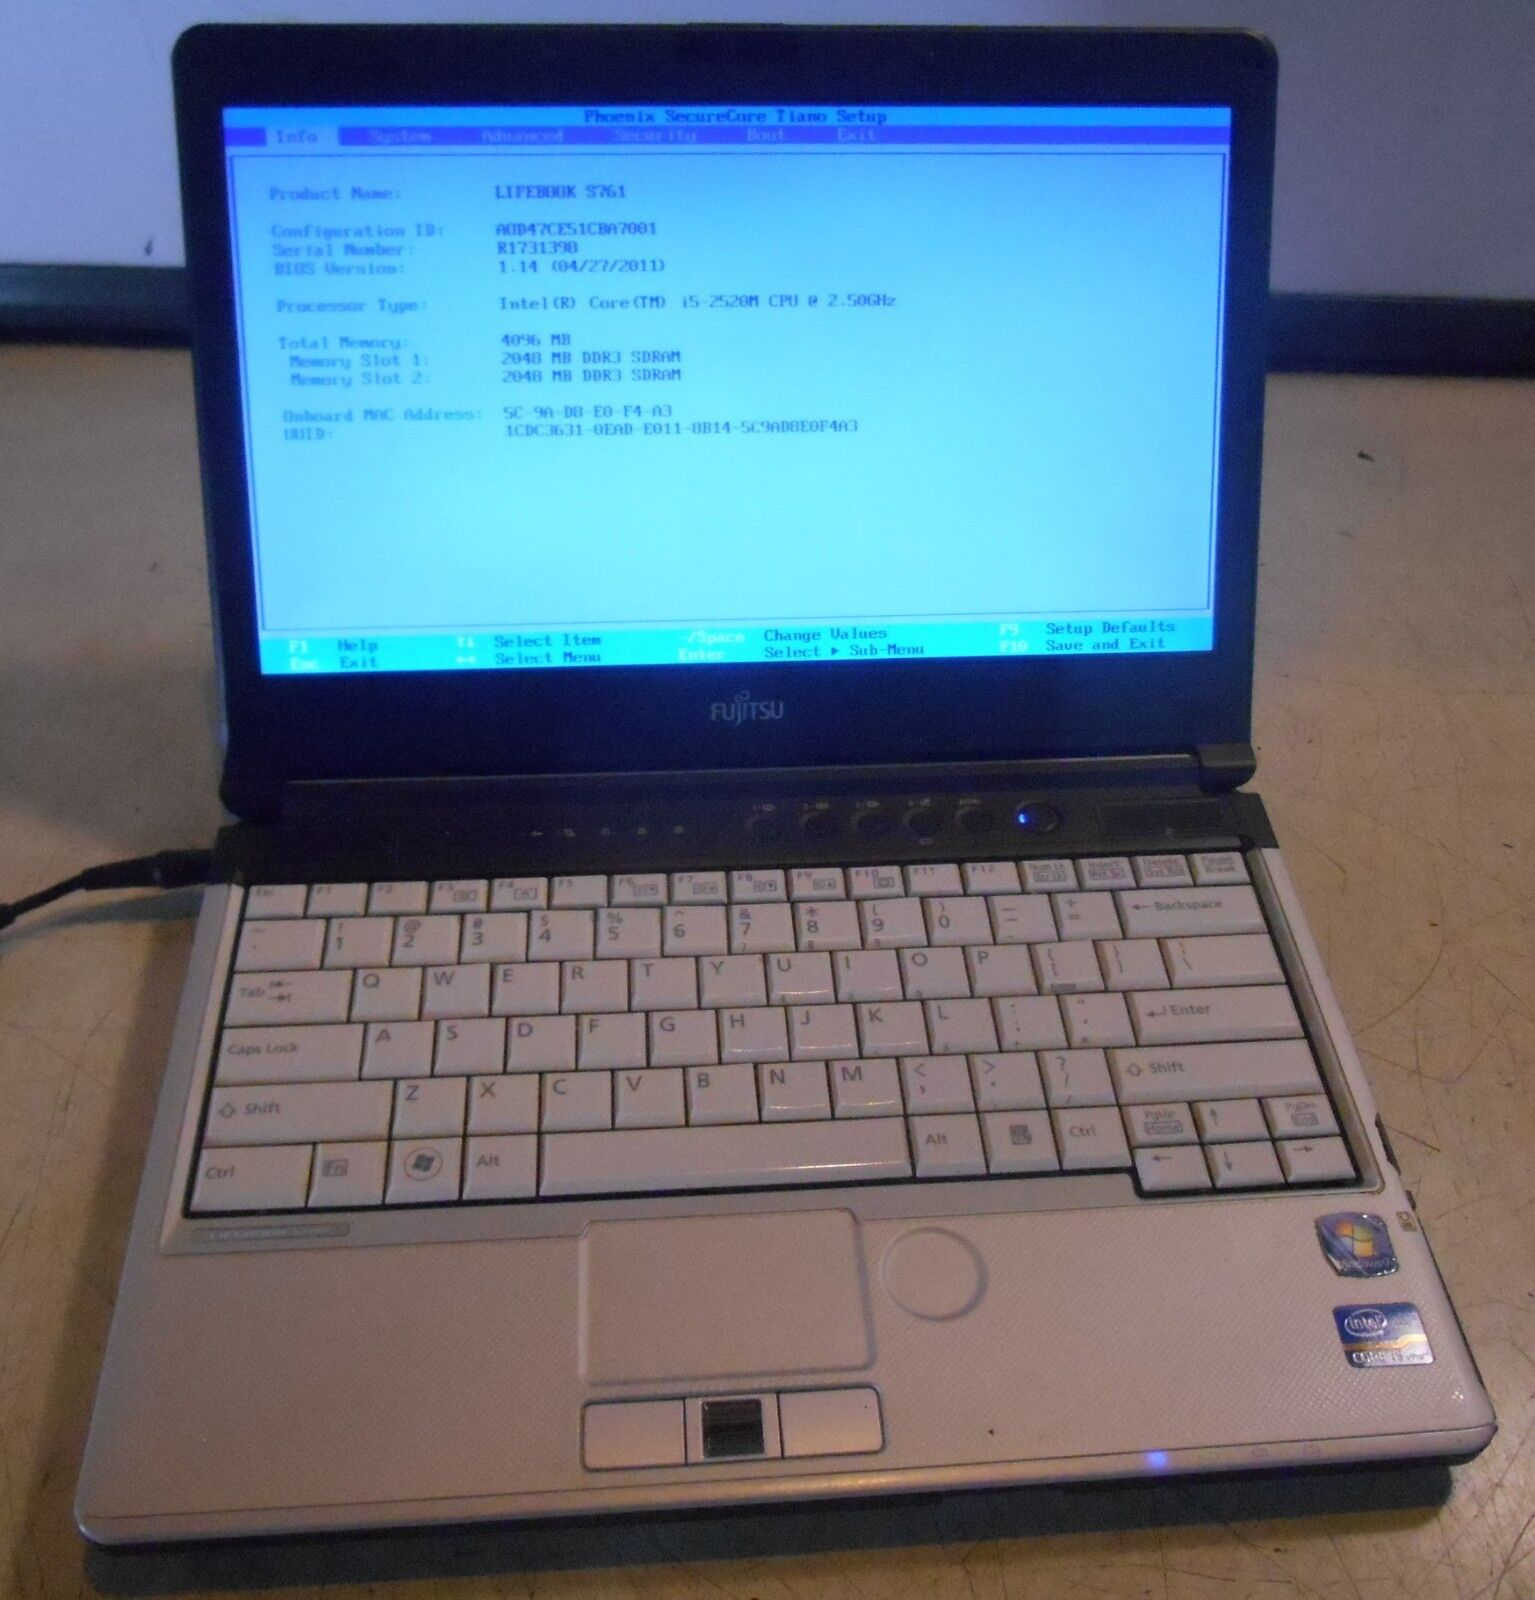 Lifebook S761 Intel core i5-2520M @ 2.50GHz 4GB Laptop Computer, no hdd